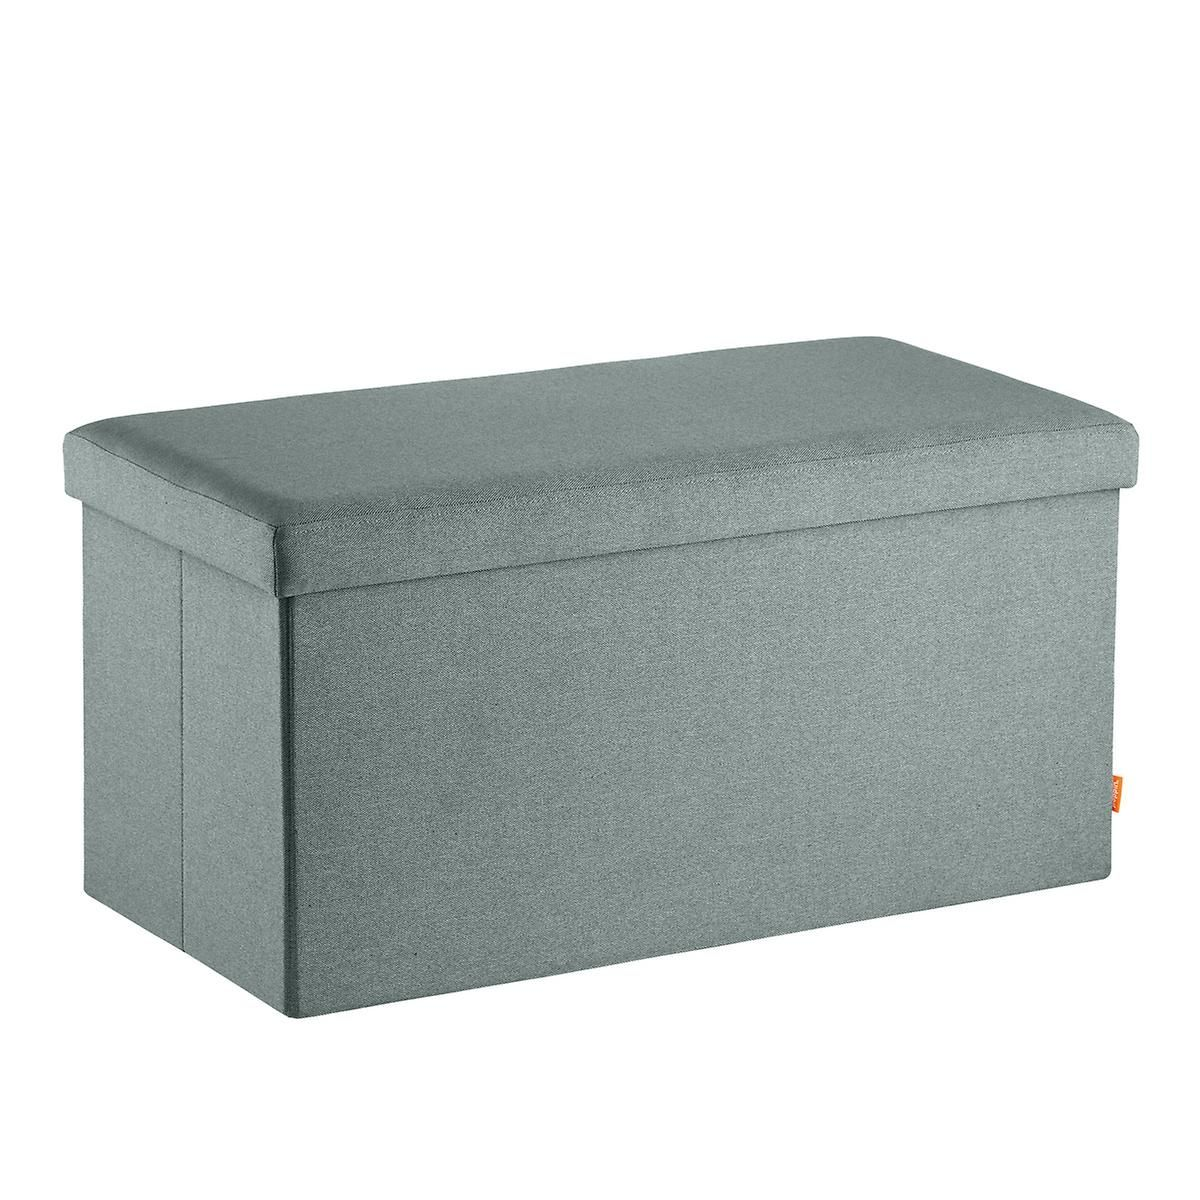 Poppin Sage Box Bench The Container Store In 2020 Storage Stylish Storage Fabric Storage Cubes